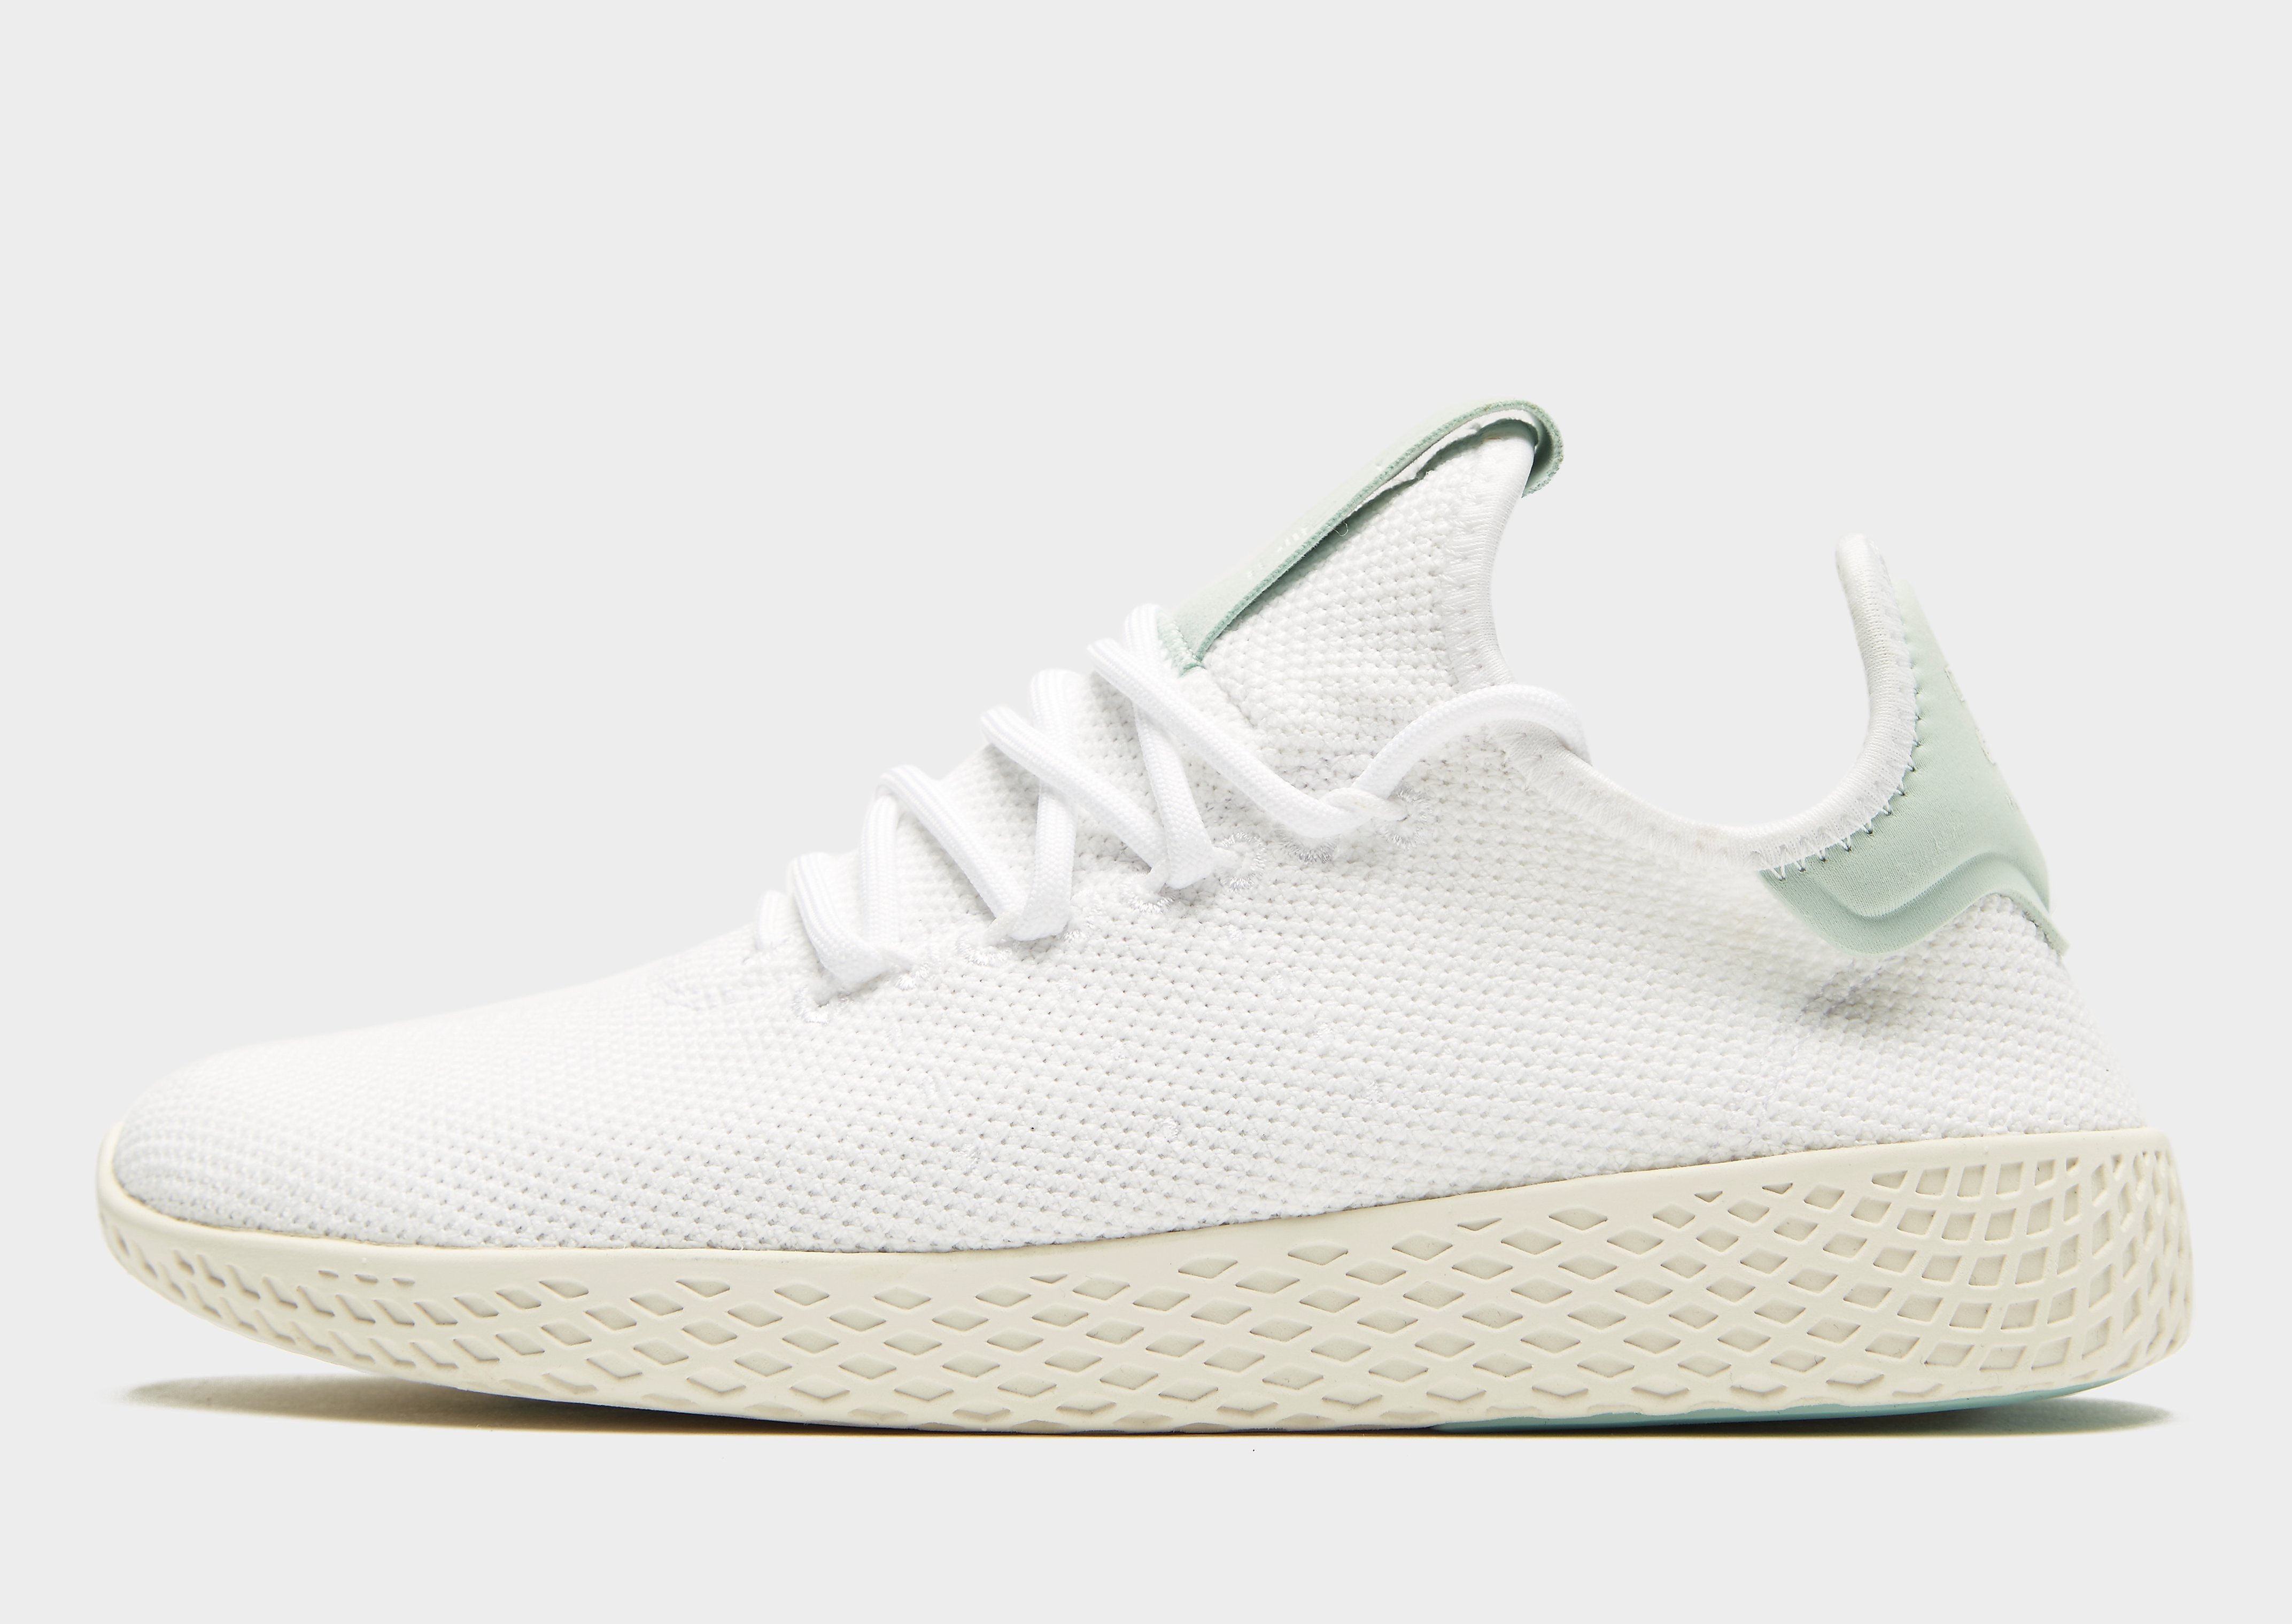 adidas Originals x Pharrell Williams Tennis Hu Women's